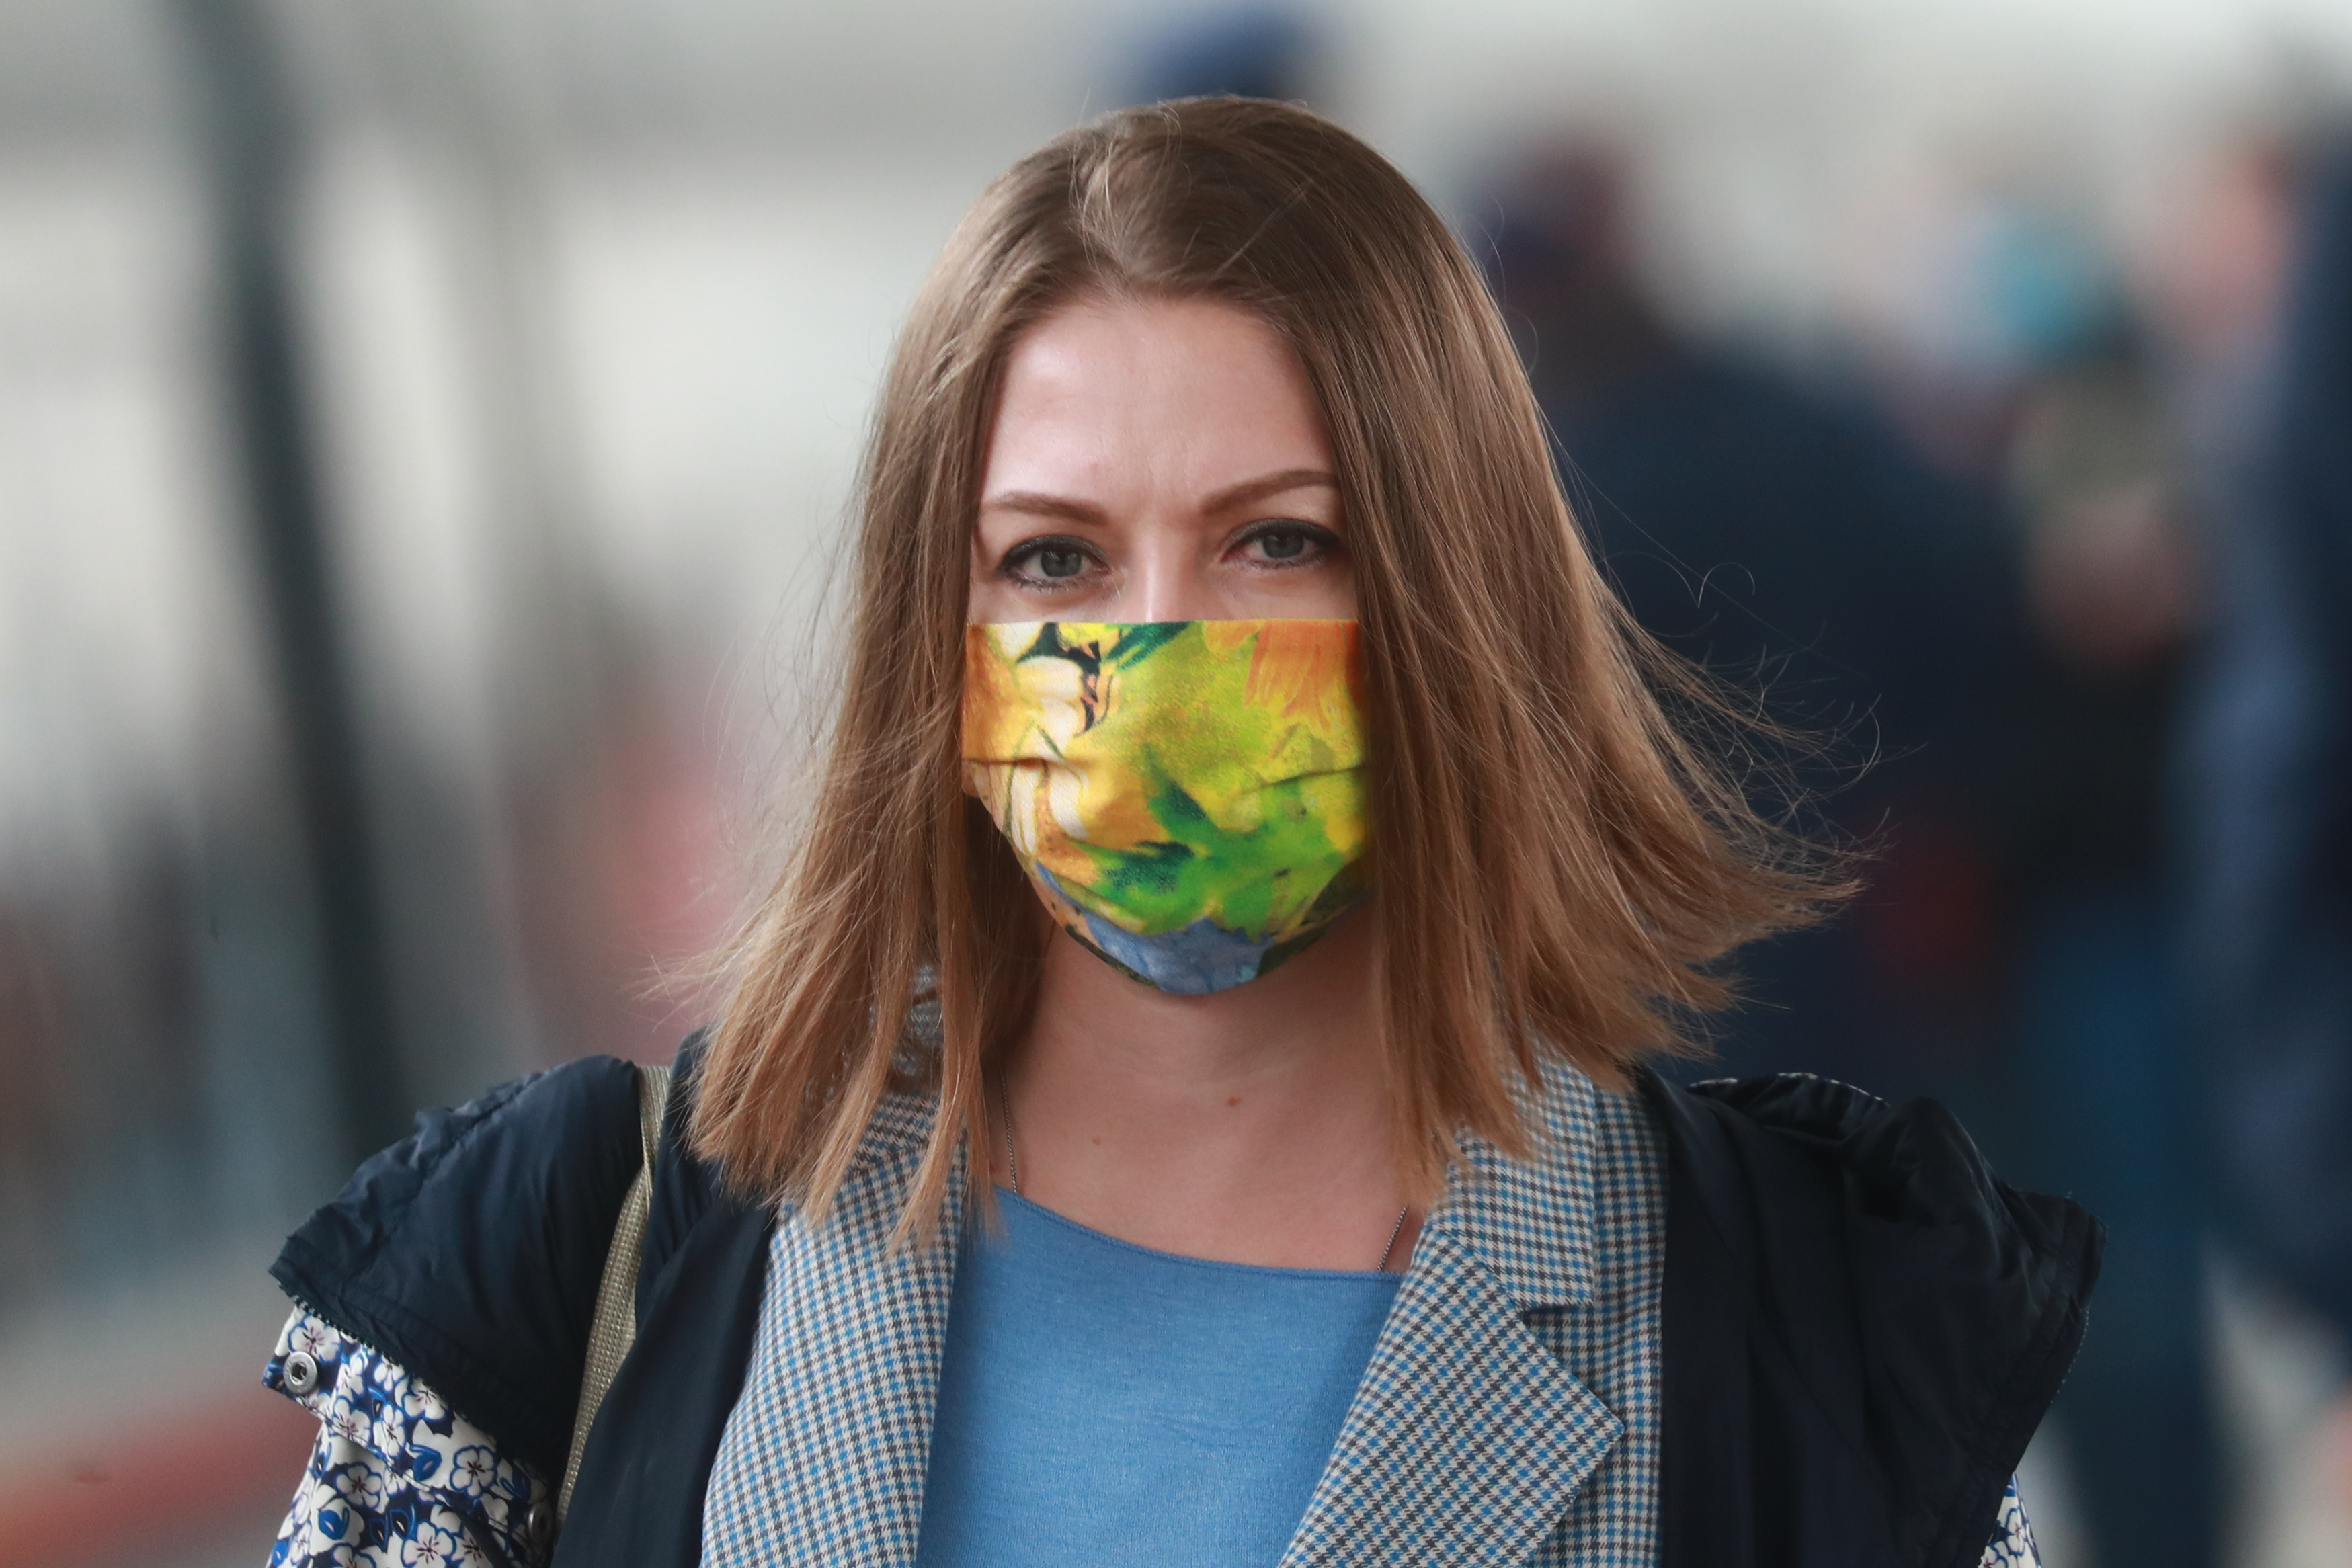 MOSCOW, RUSSIA - MAY 29, 2020: A young woman in a face mask at Leningradsky Railway Station. Starting from 29 May 2020, RZD Russian Railways is to increase by double the number of high speed trains that run between Moscow and St Petersburg. Sergei Fadeichev/TASS (Photo by Sergei Fadeichev\TASS via Getty Images)